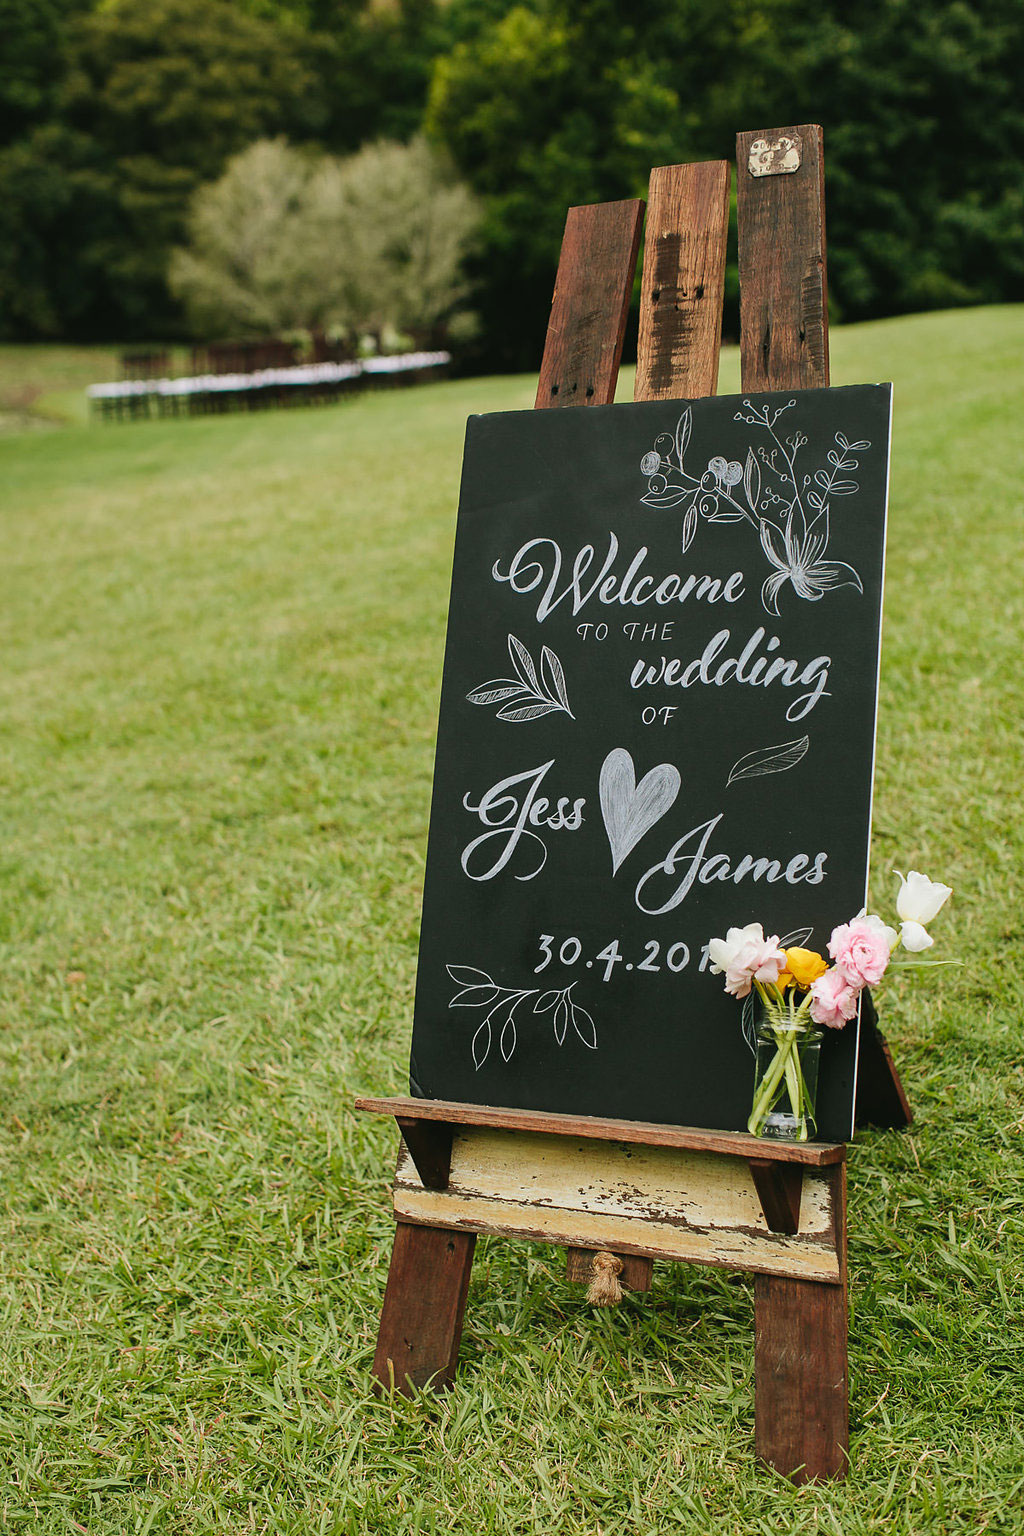 Wedding welcome chalkboard sign with hand-lettering   by www.chavelli.com